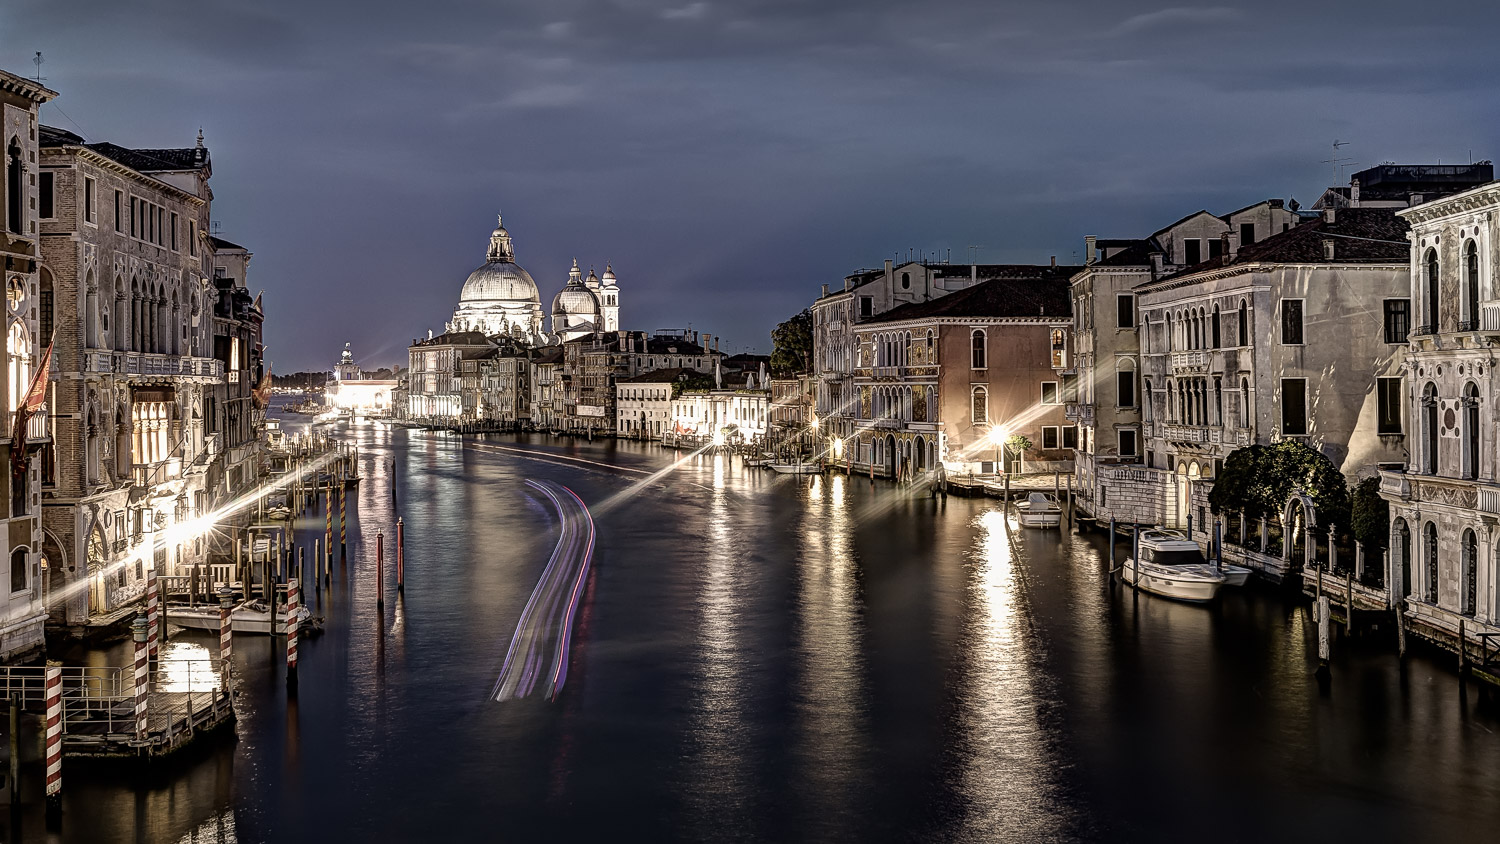 8-View from Ponte dell' Accademia.jpg